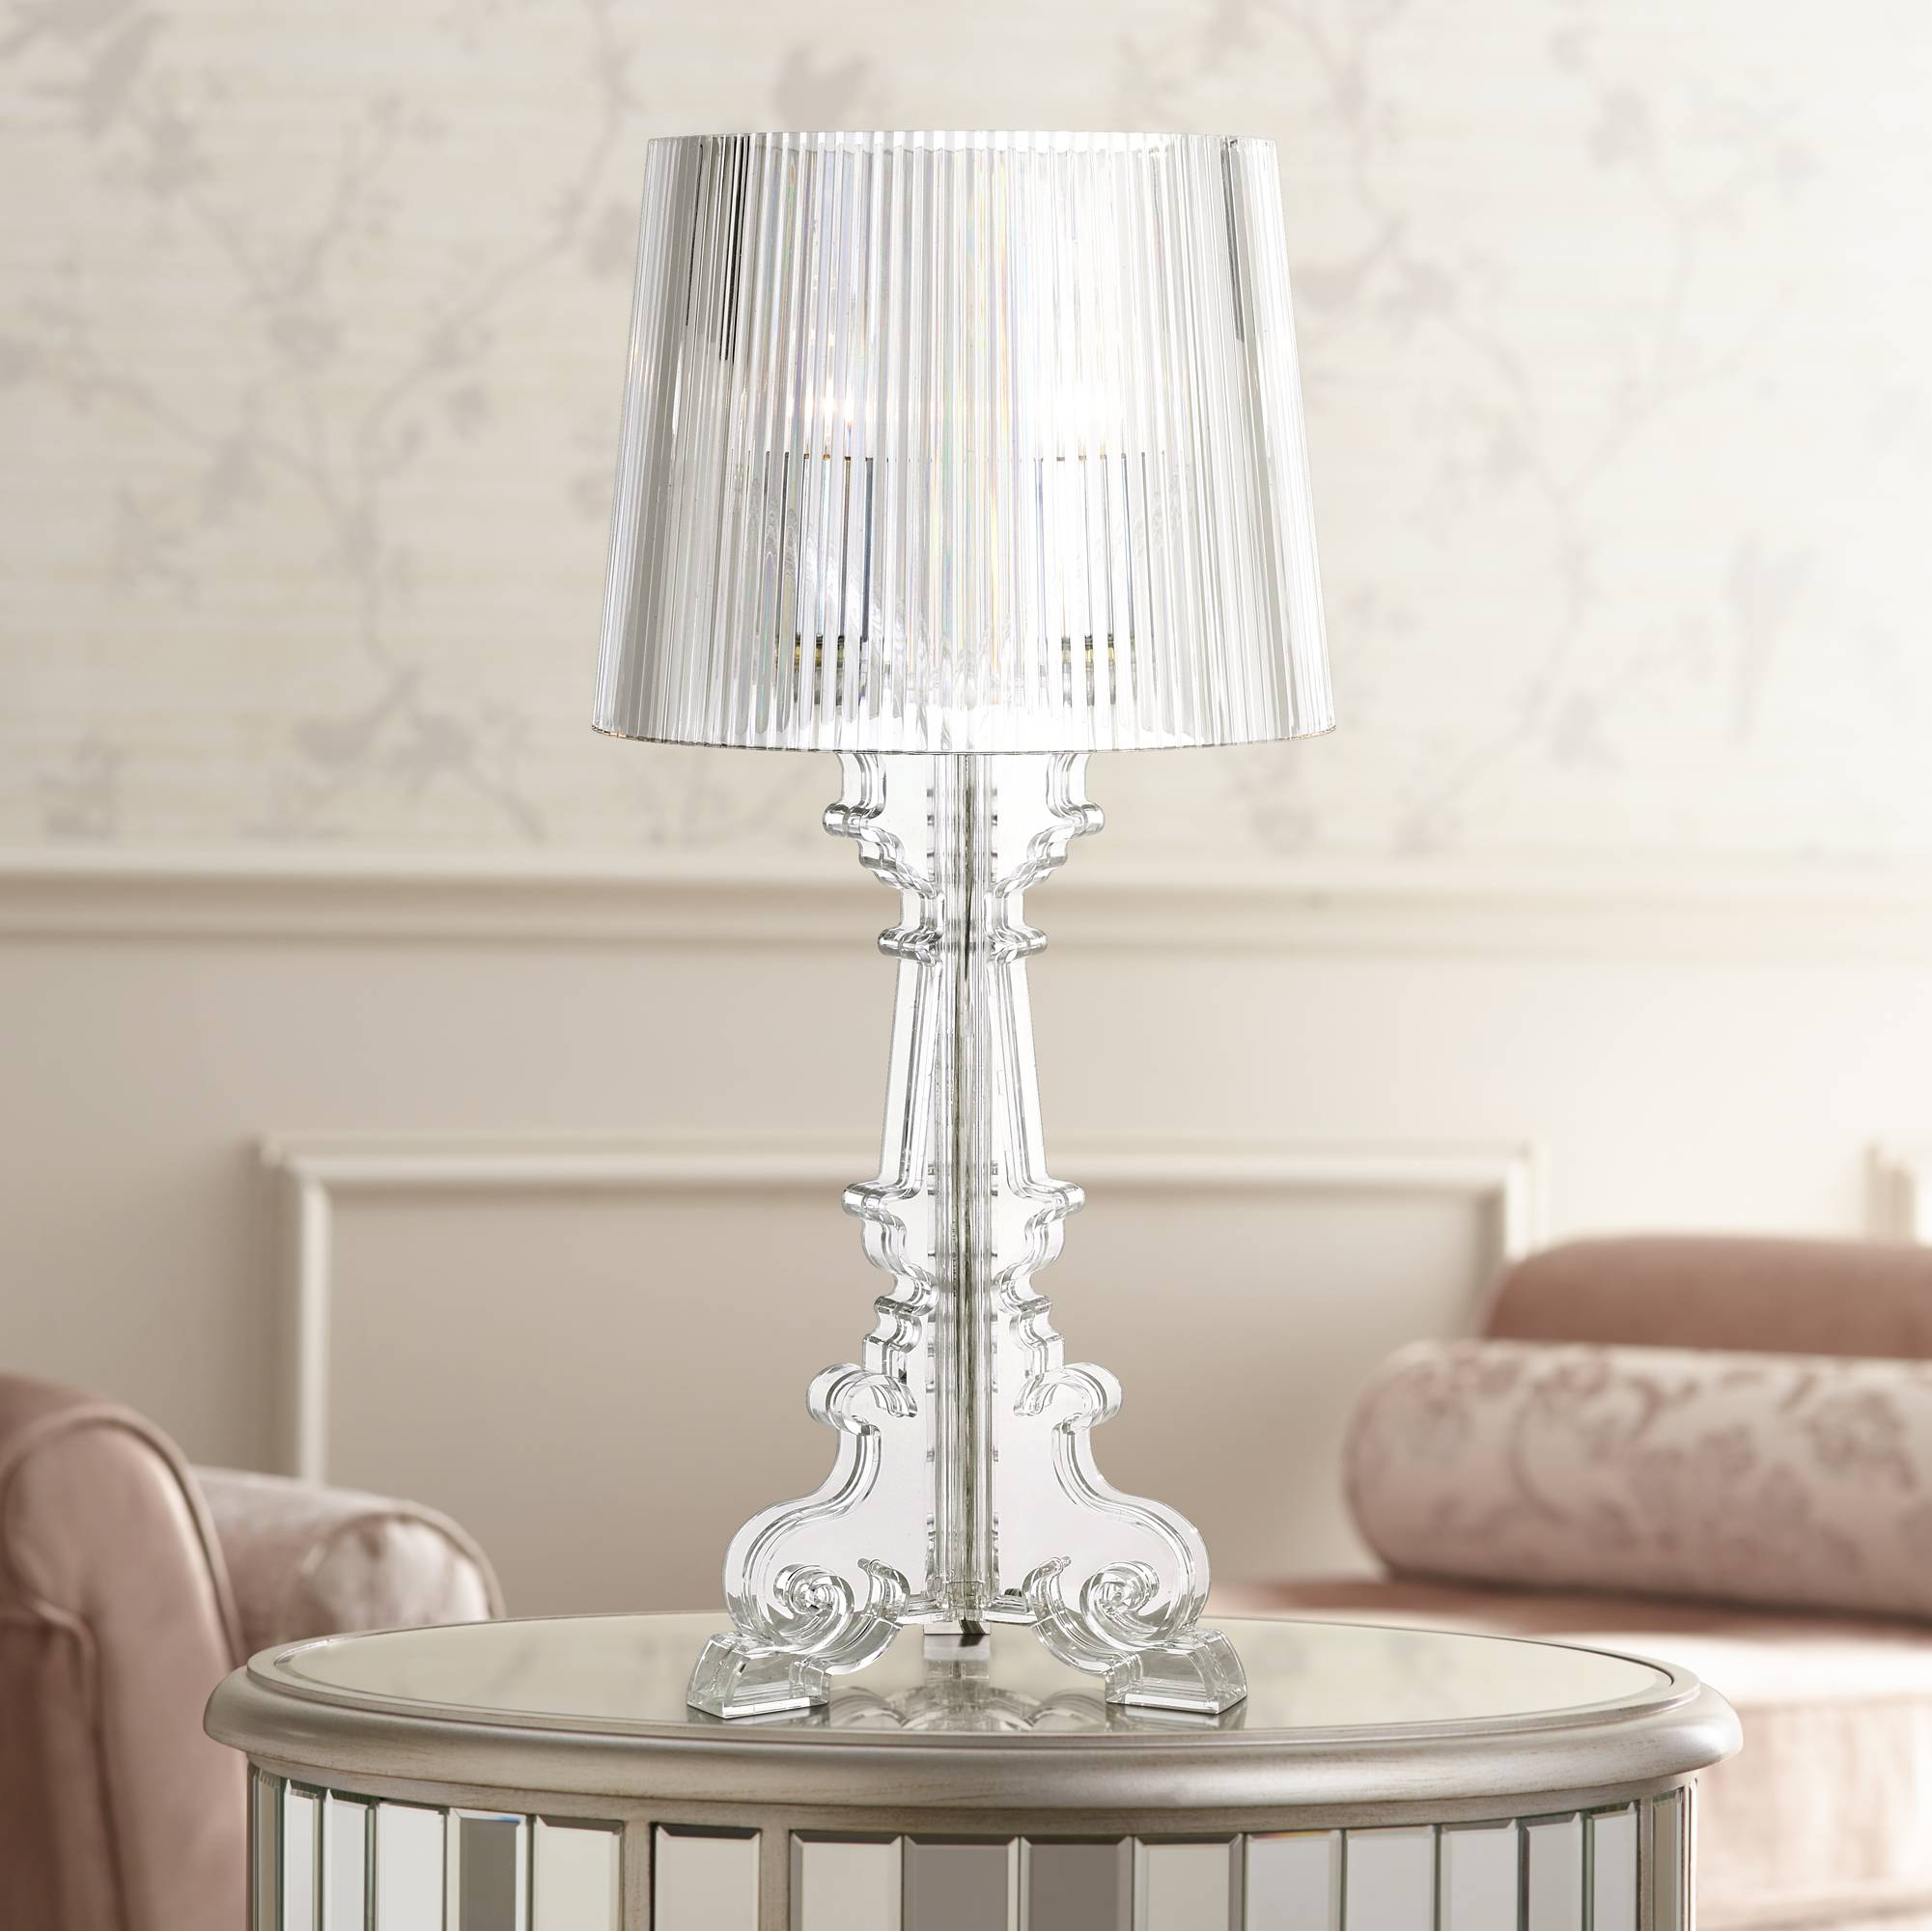 Baroque clear acrylic 20 high accent table lamp